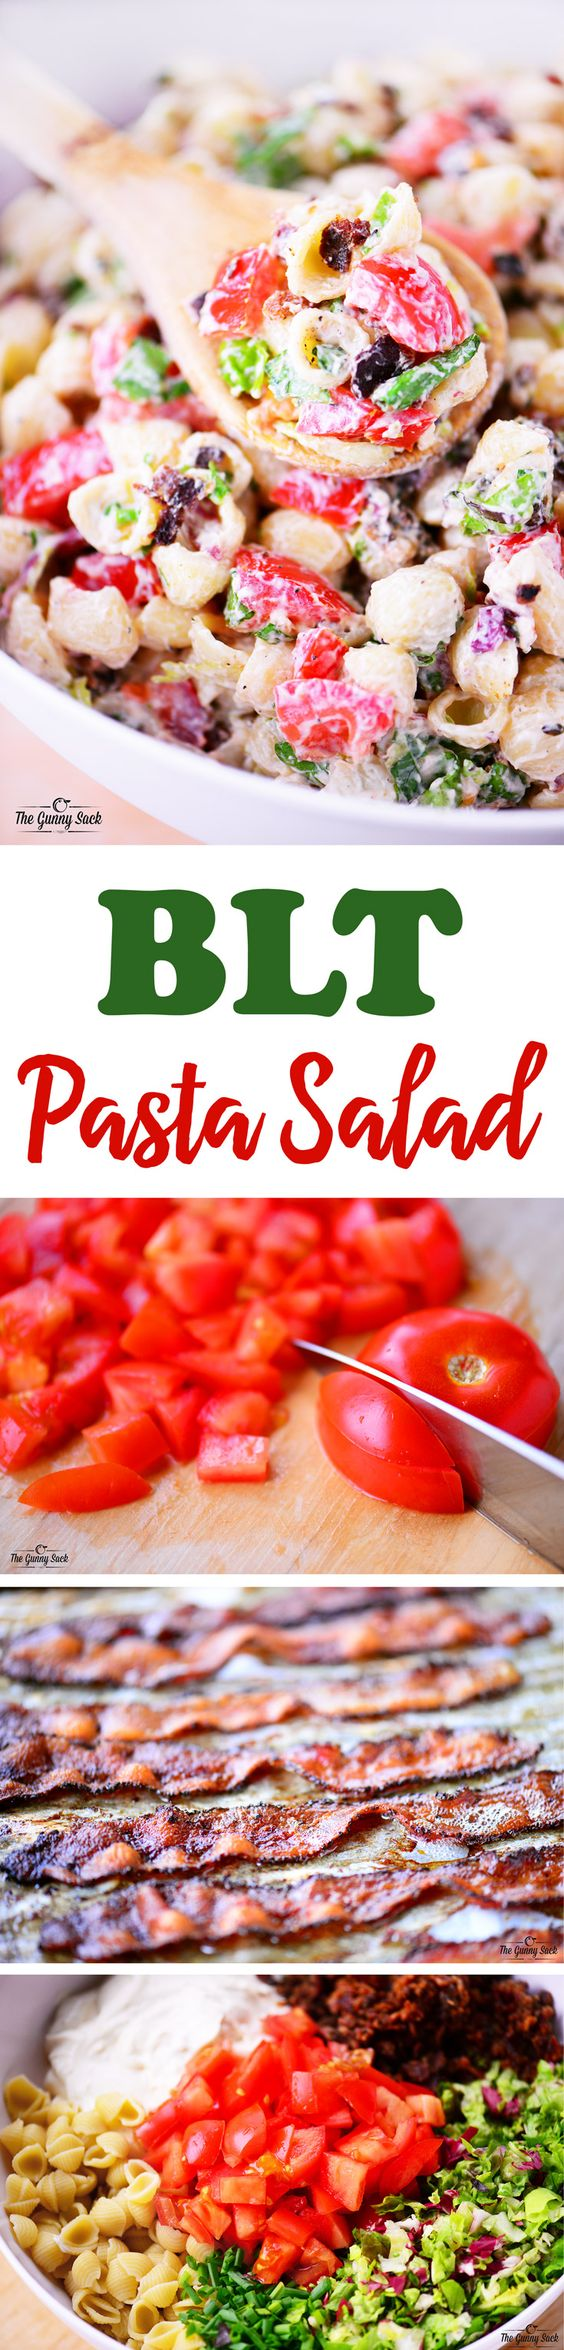 BLT Pasta Salad | Recipe | Blt Pasta Salads, Pasta Salad and Summer ...